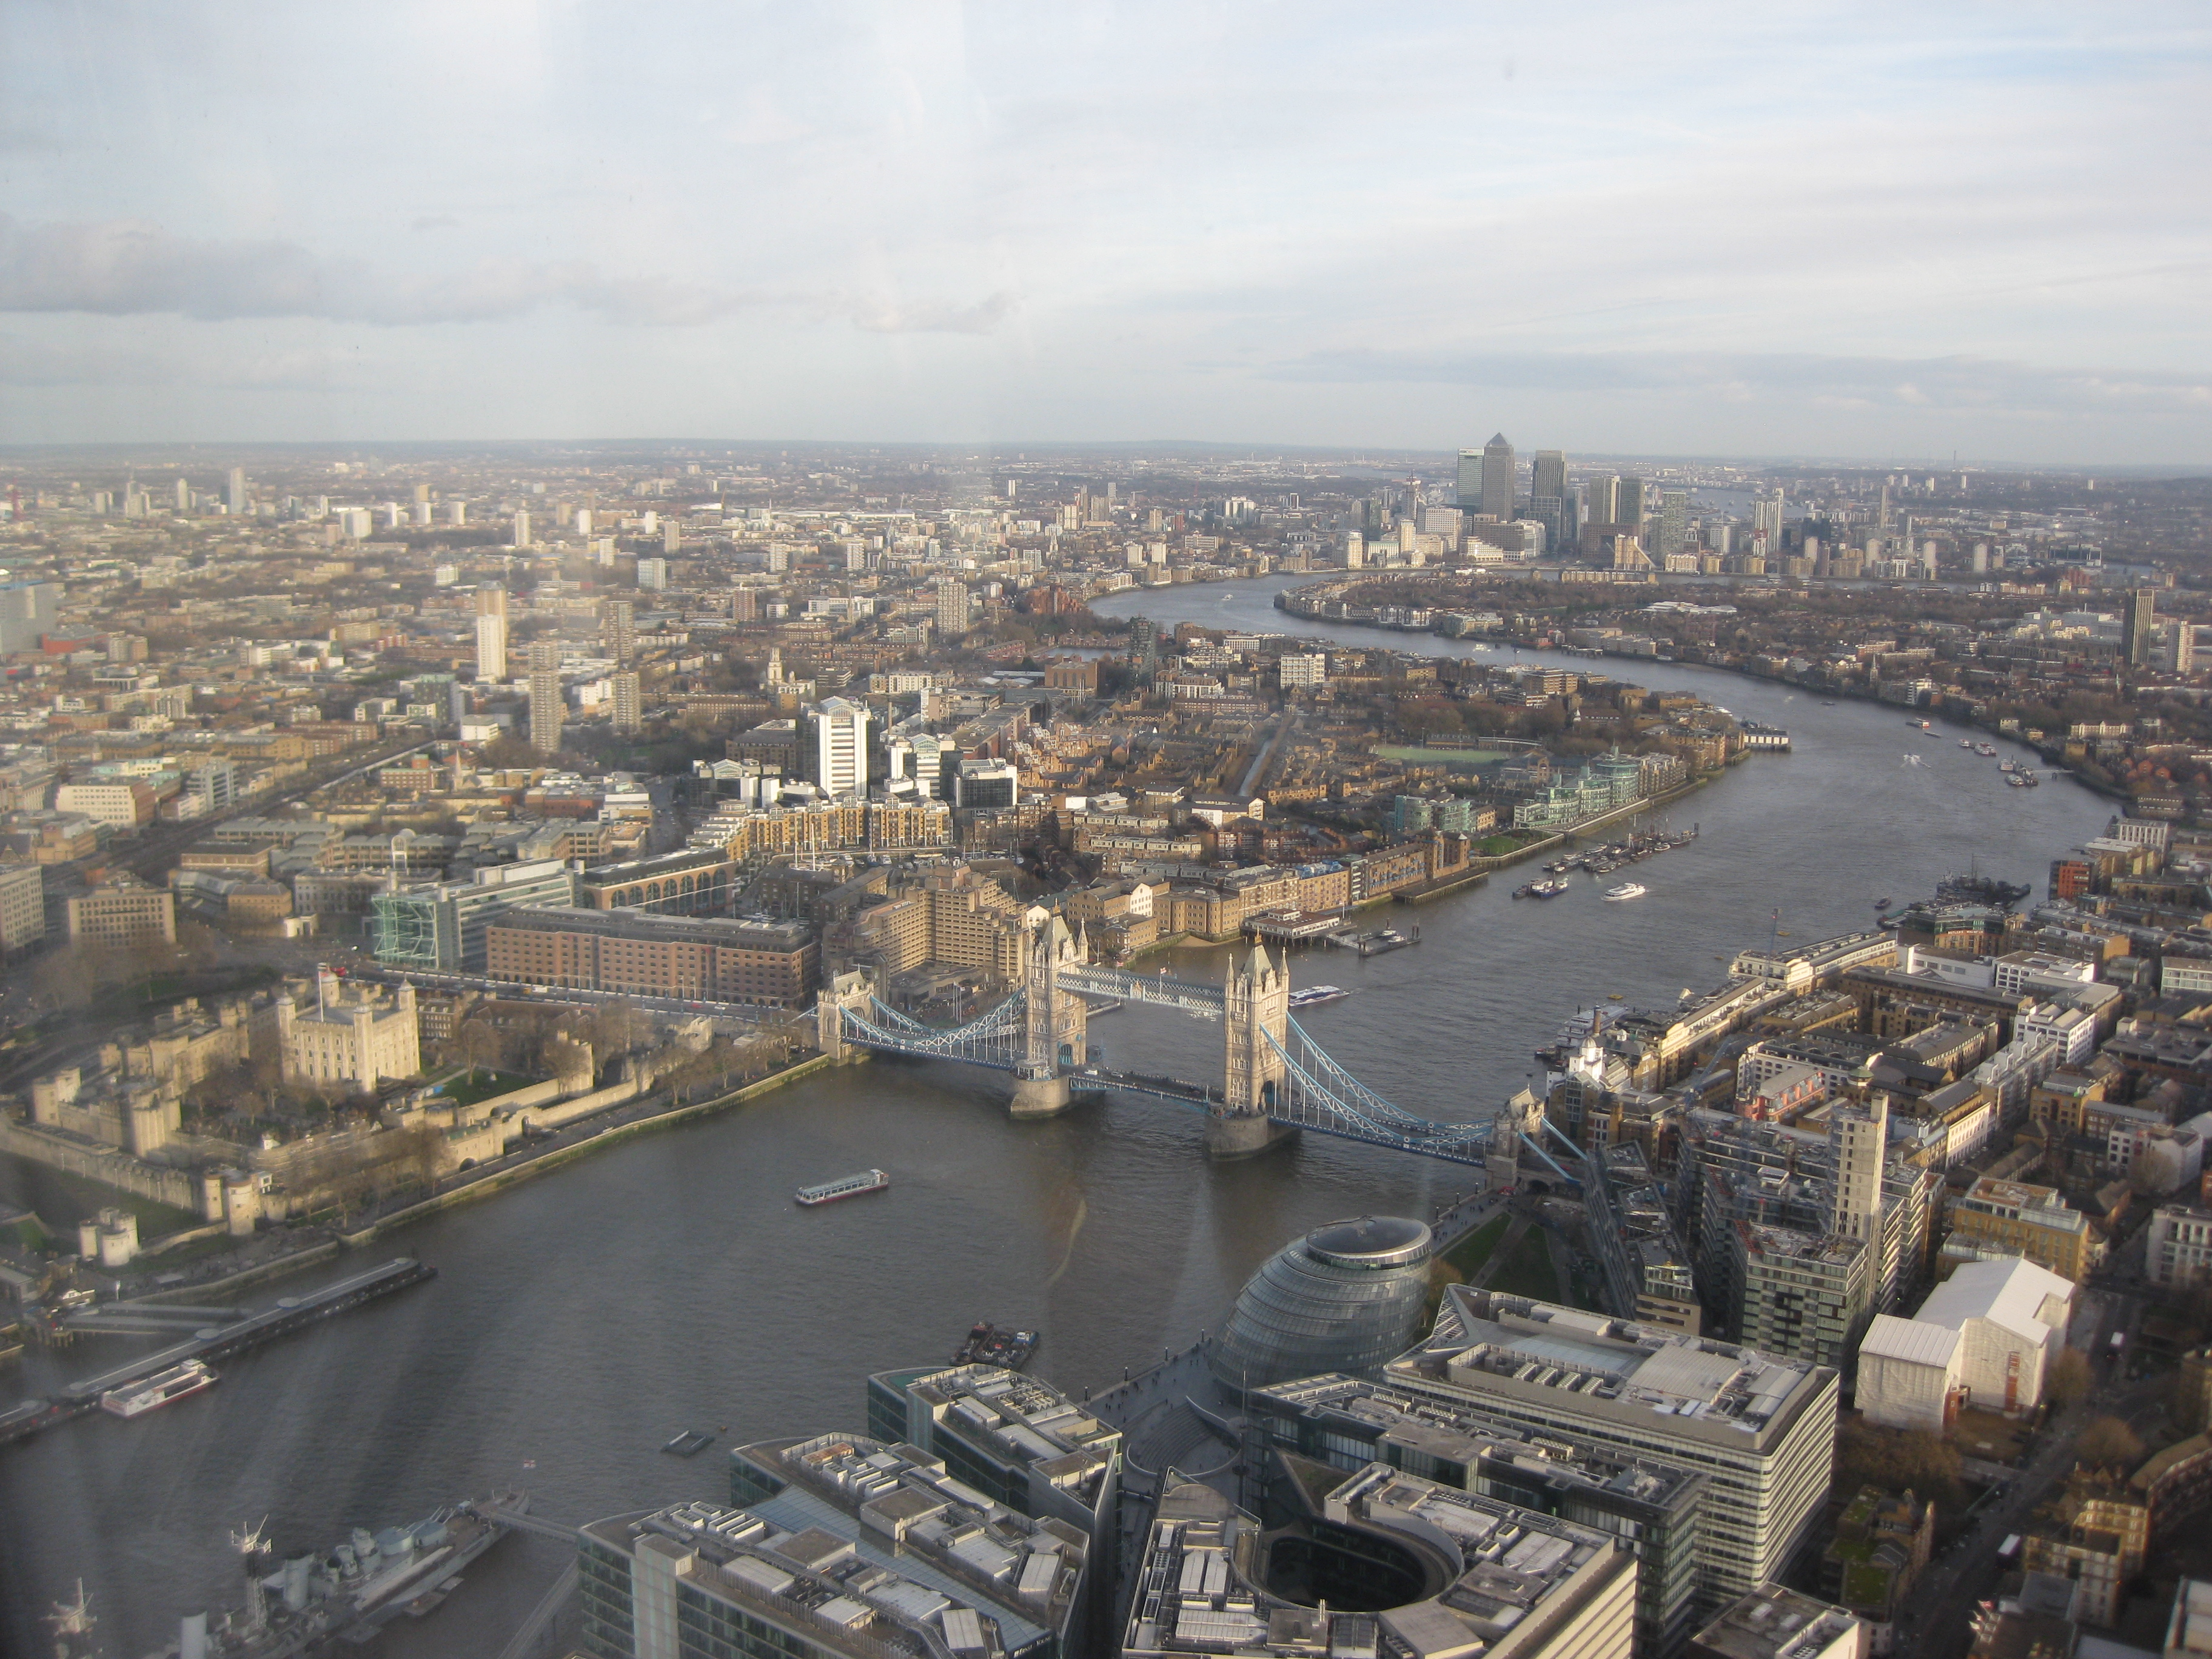 The view to the east: Tower Bridge and Canary Wharf, London